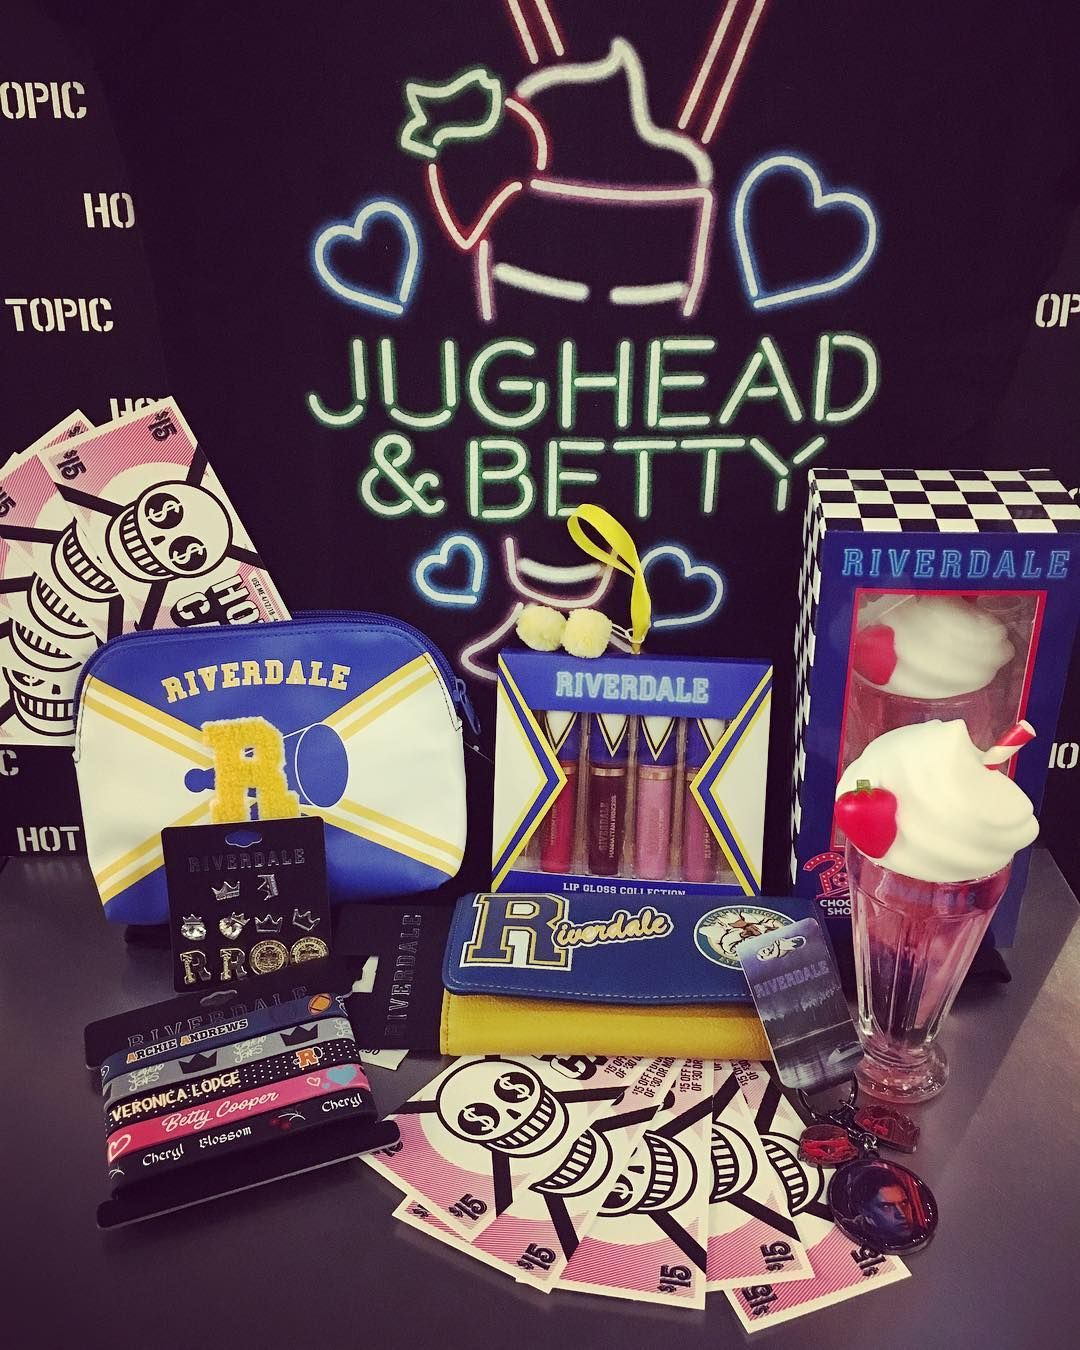 3e0d3bcd6a26b Tons of awesome Riverdale merch to spend your Hot Cash on!  hottopic   hotcash  riverdale  bughead  cosmetics  fragrance